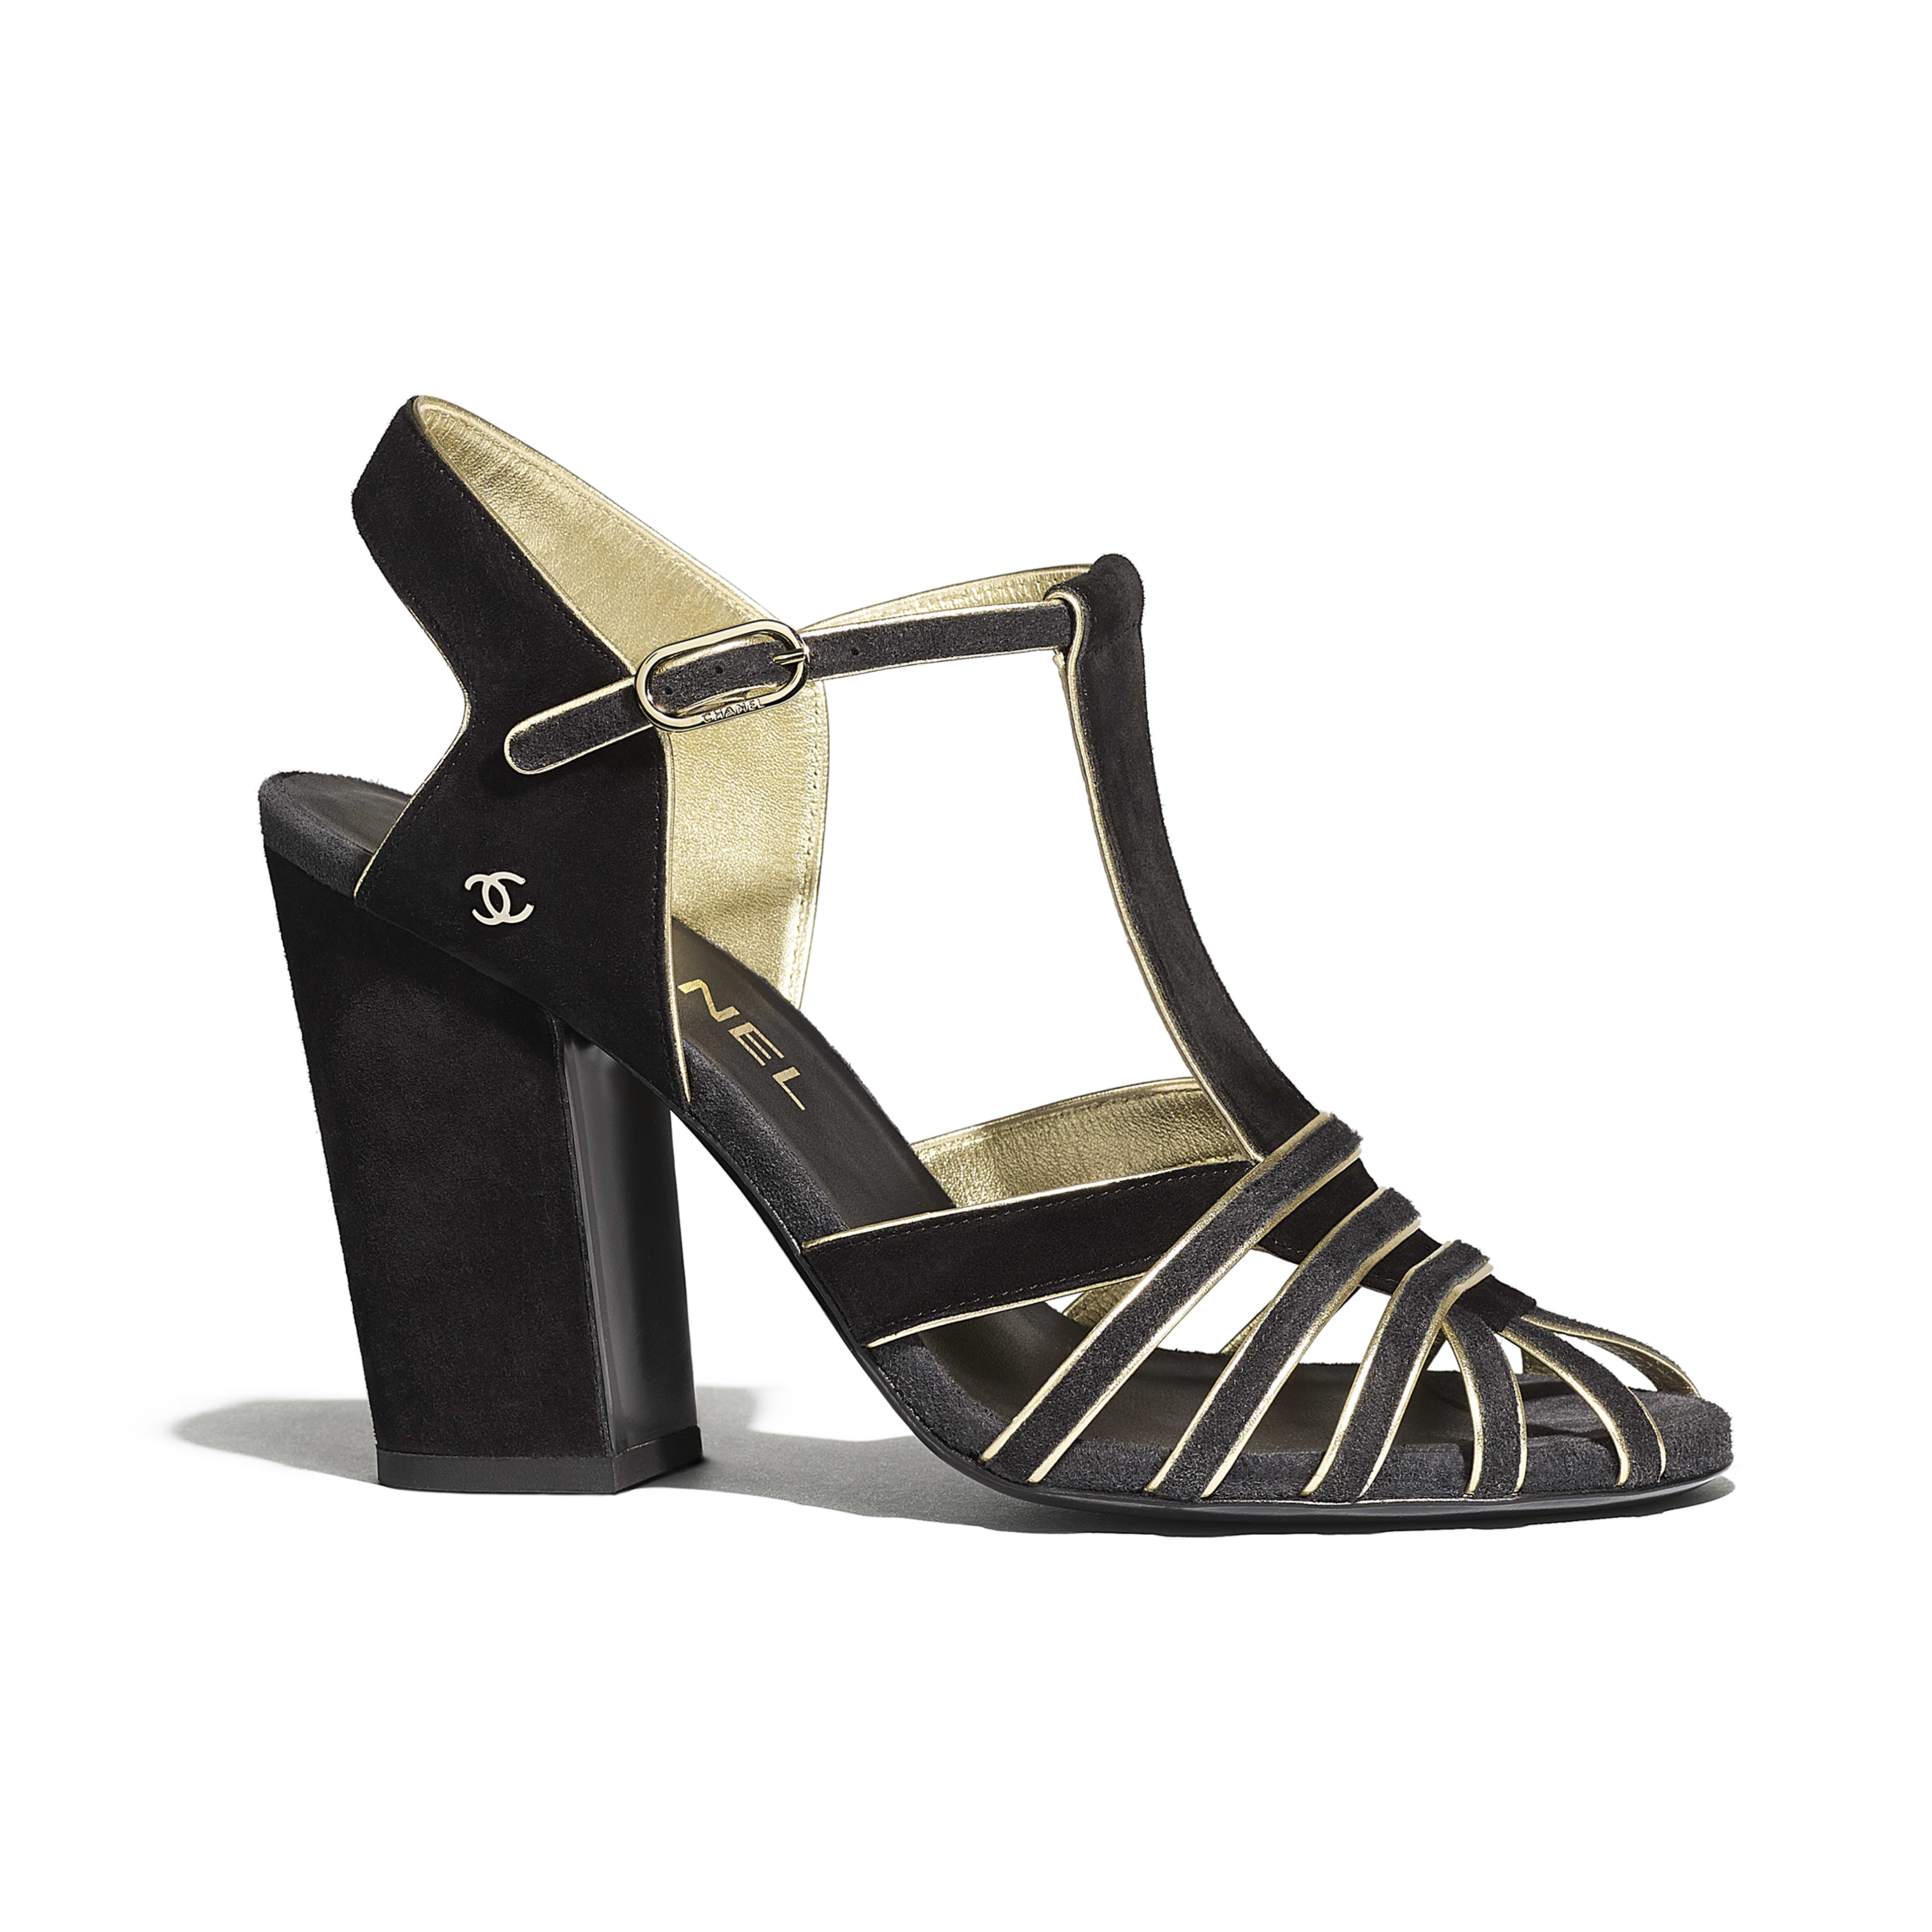 Sandals - Black & Gray - Suede Calfskin - Default view - see full sized version